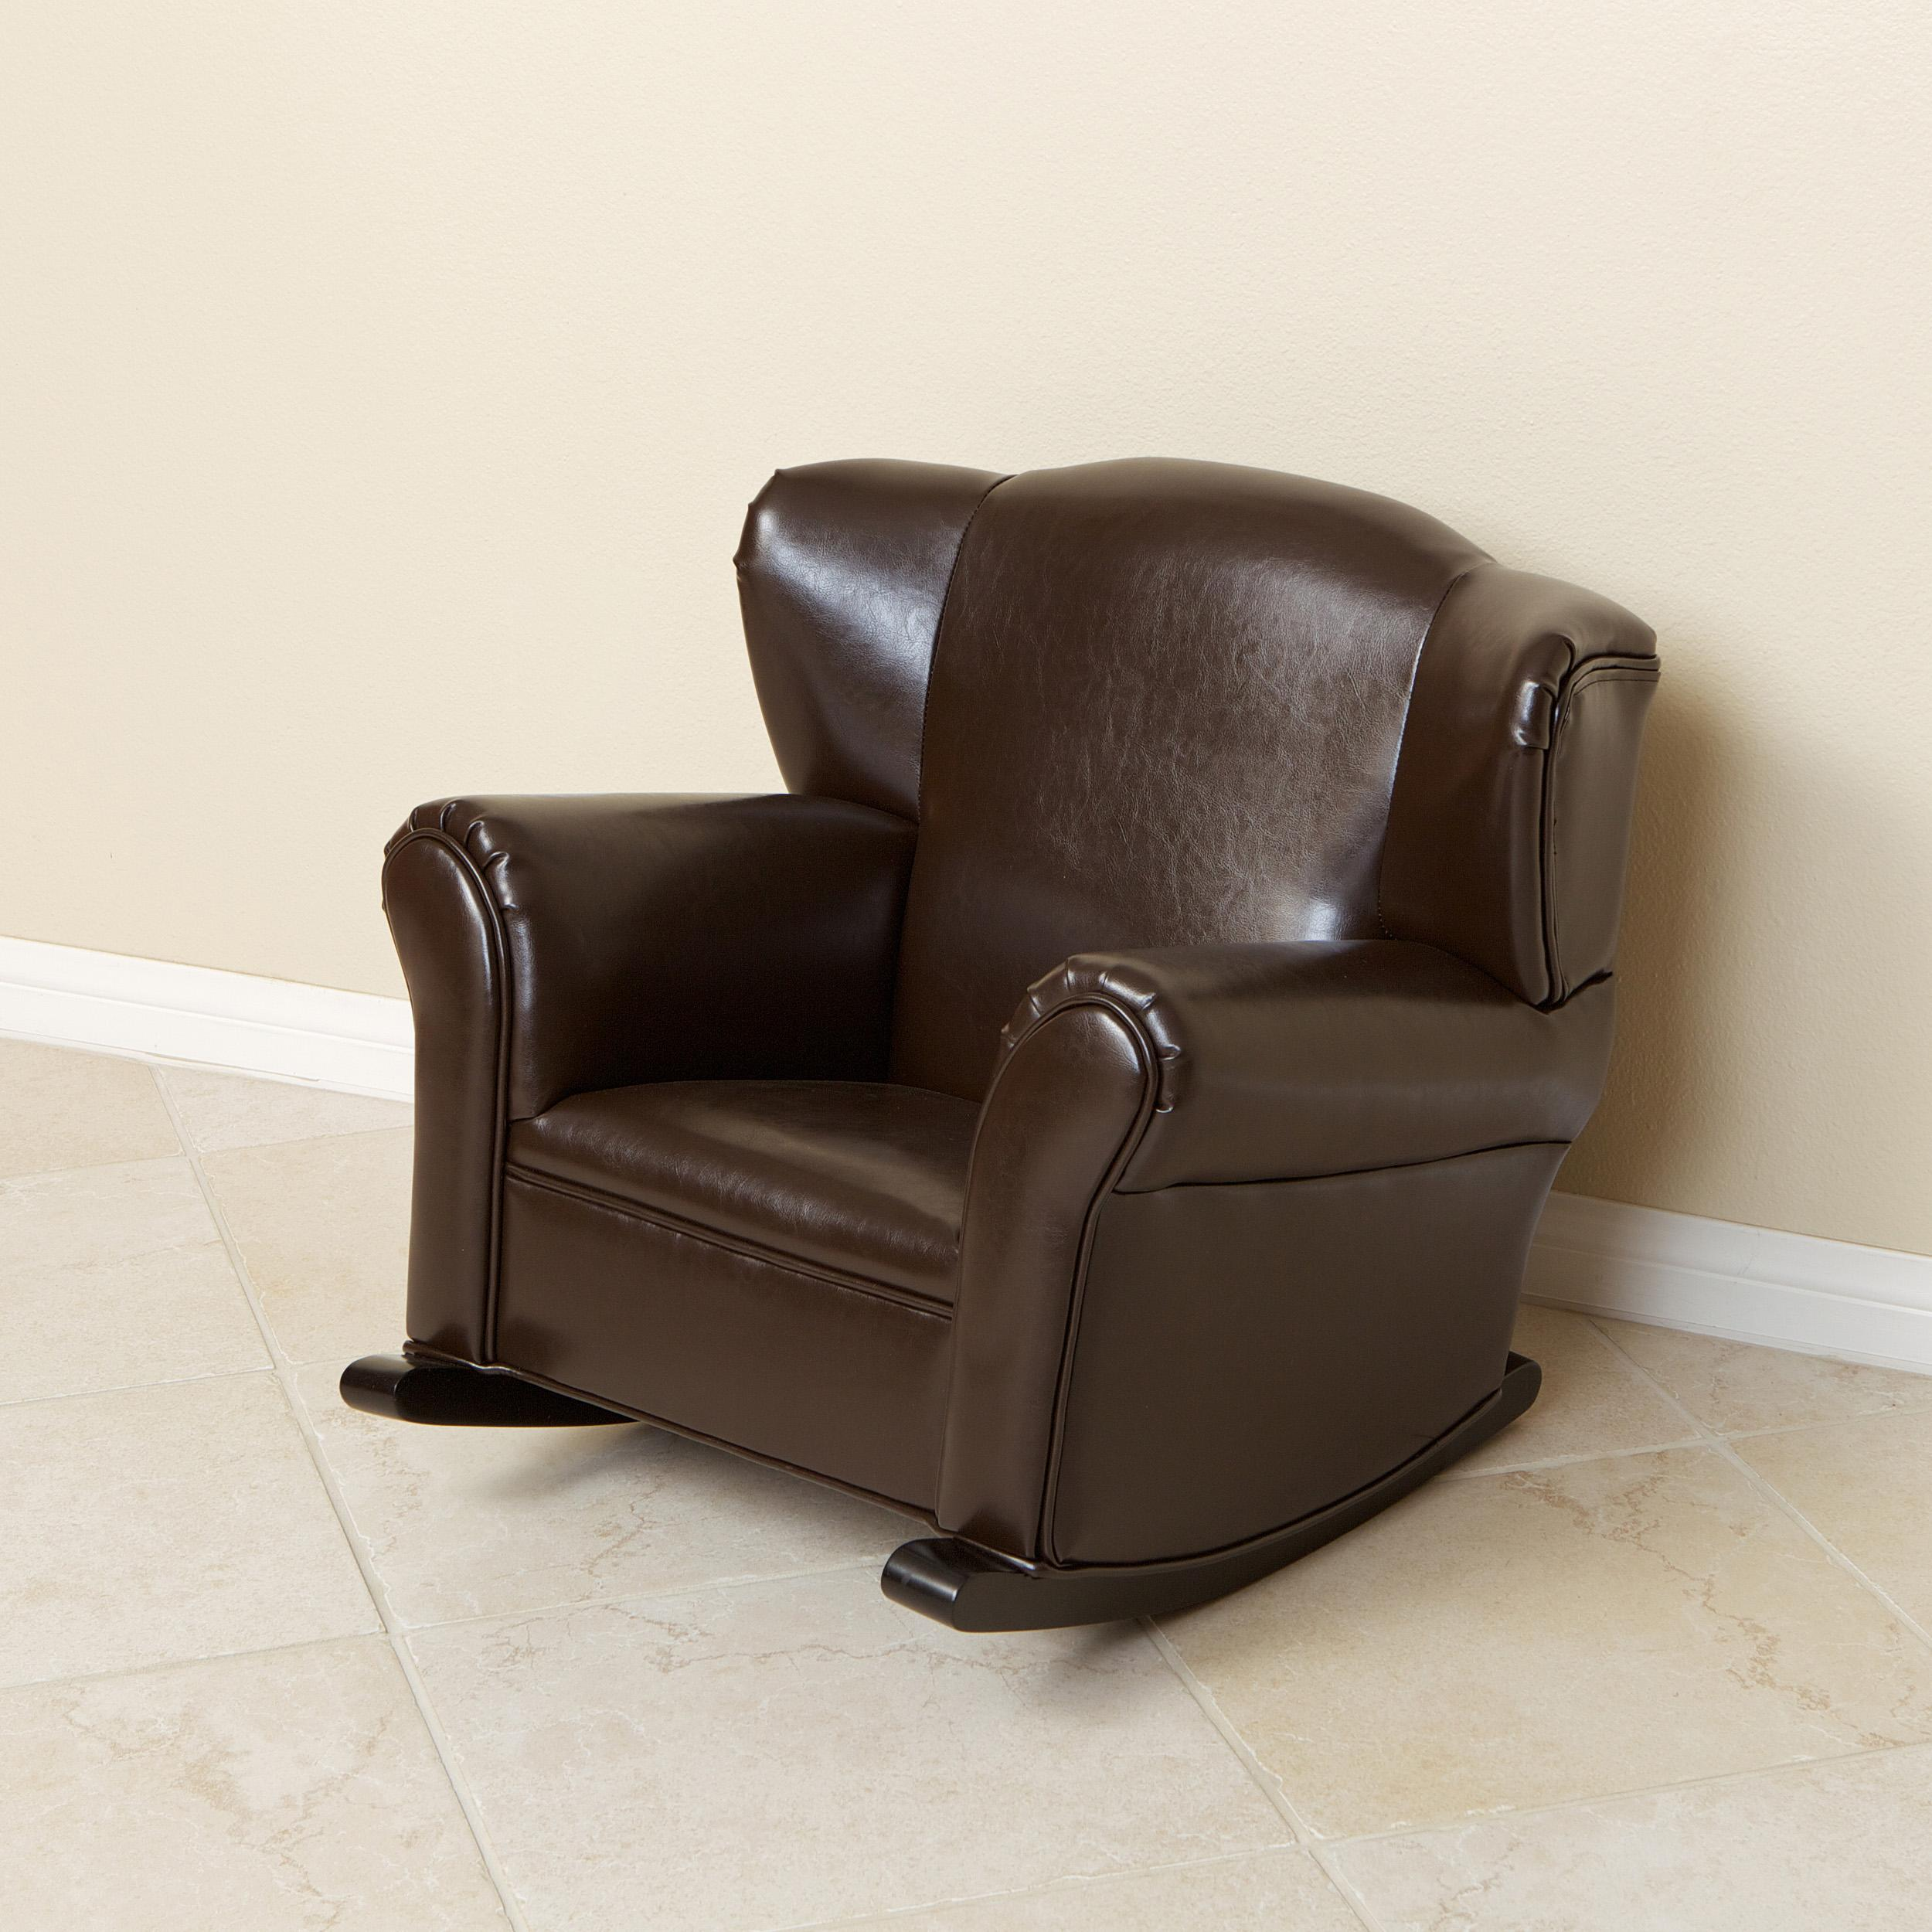 Awesome Leather Rocking Chair Furniture Designs Gallery